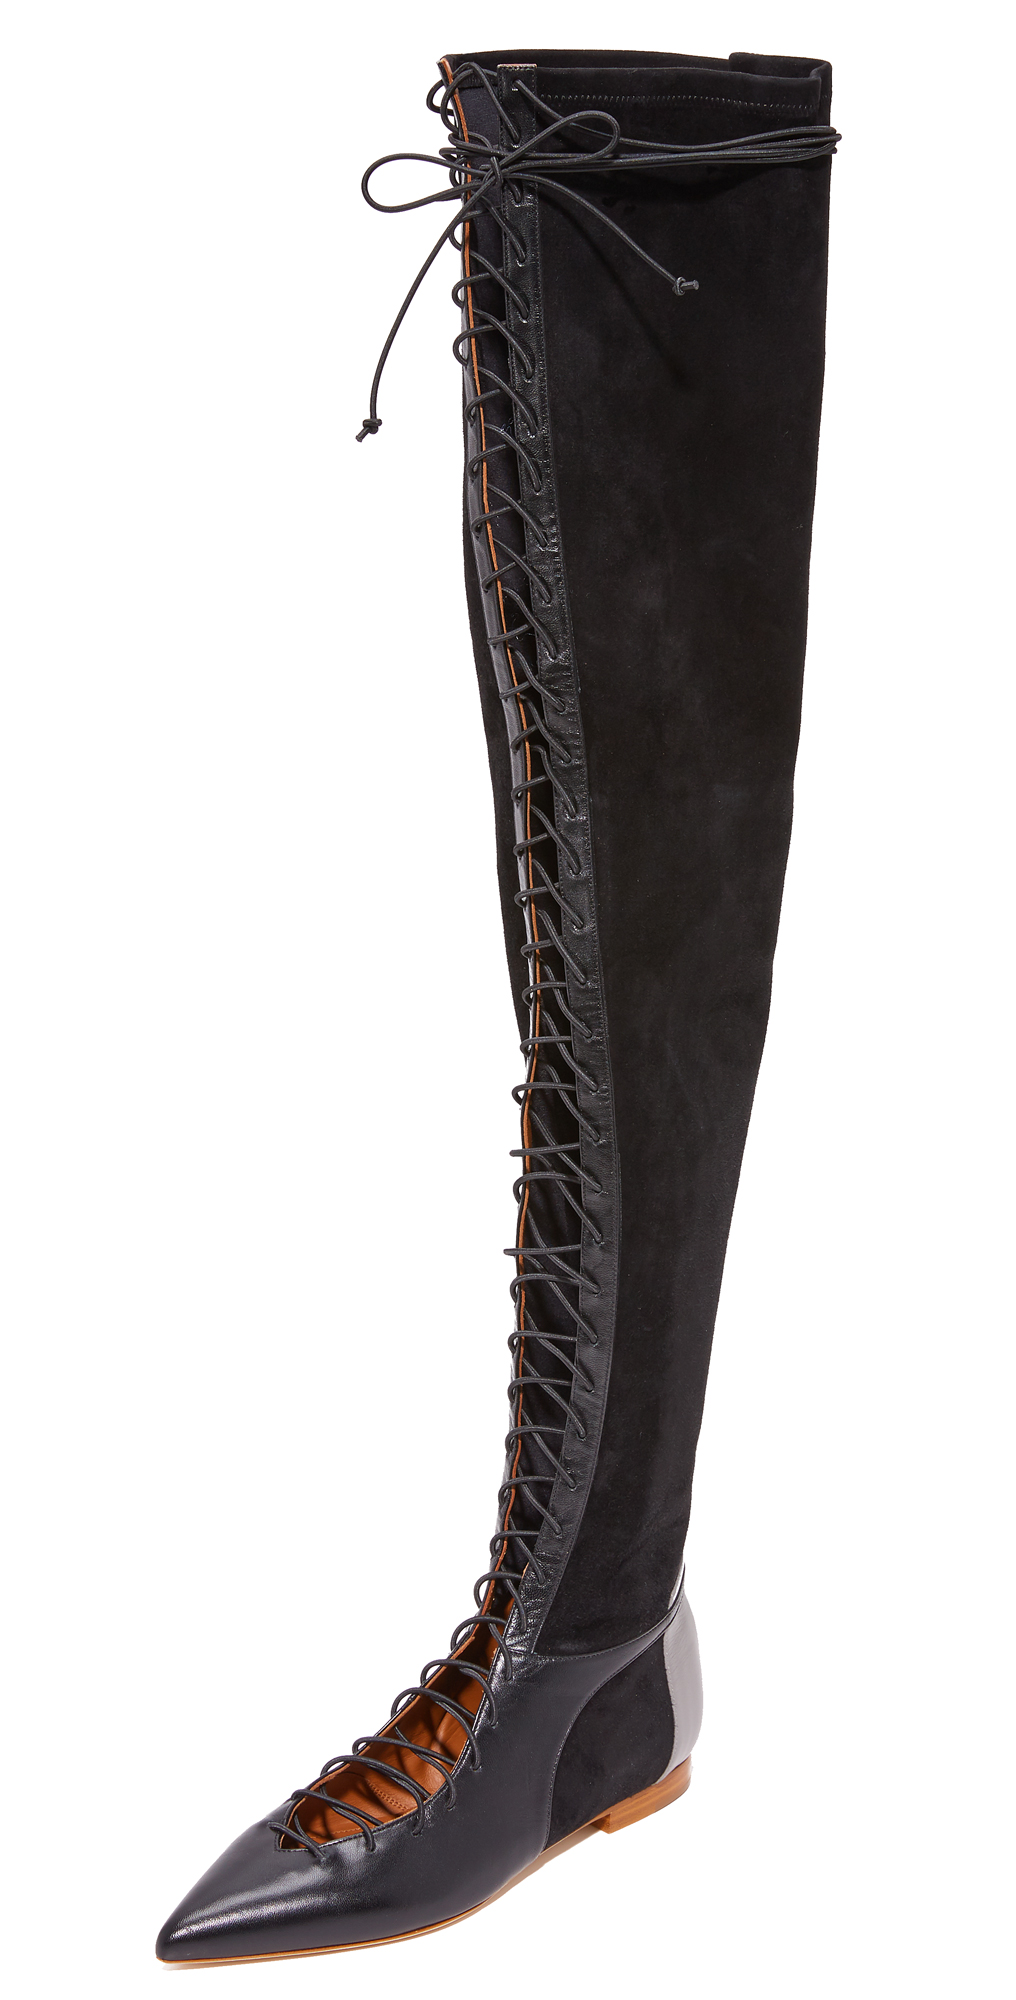 Montana Over the Knee Flat Boots Malone Souliers